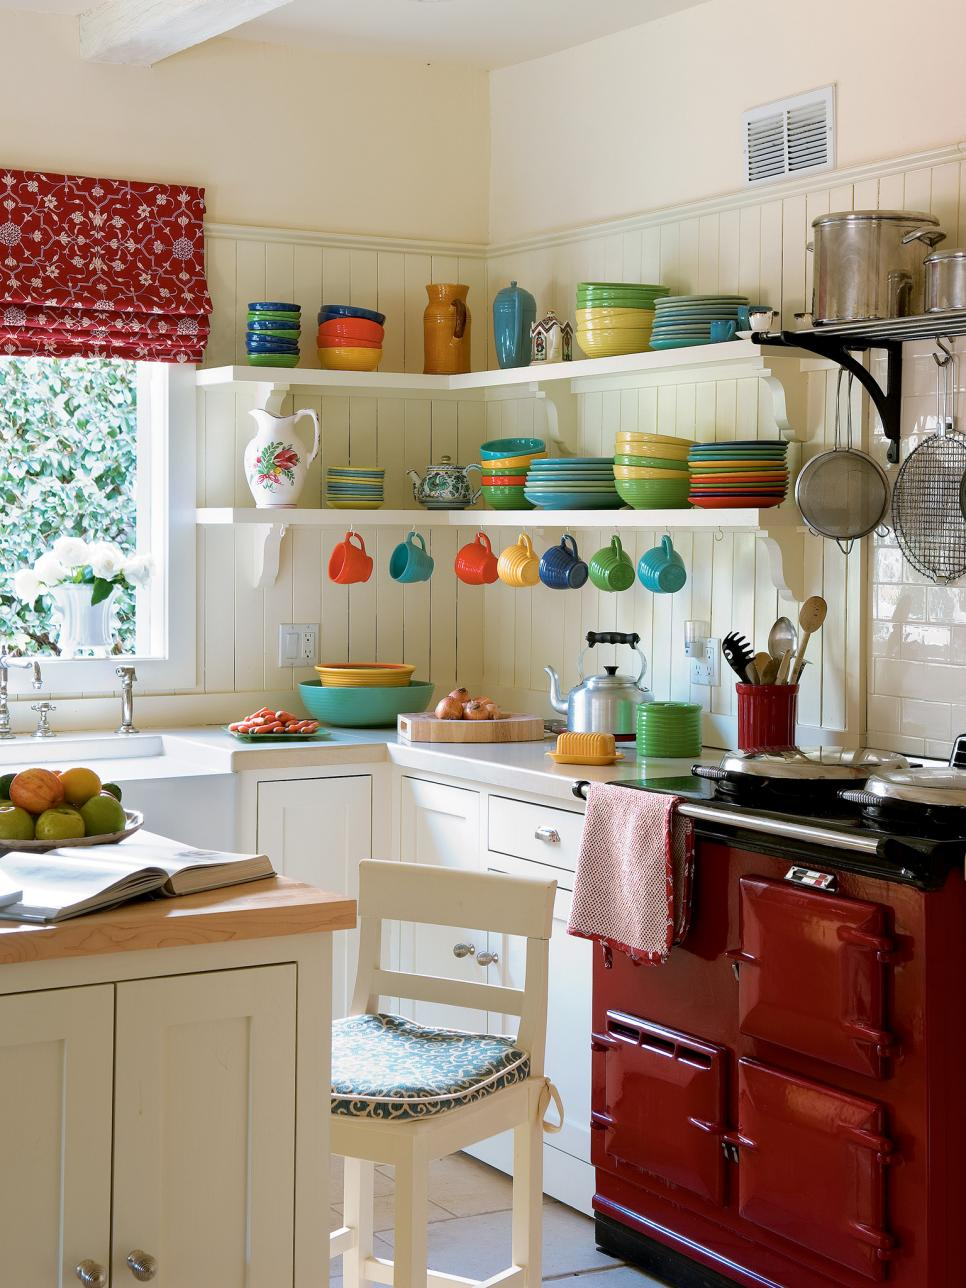 small kitchen design ideas and inspiration - Small Kitchen Design Ideas Photo Gallery